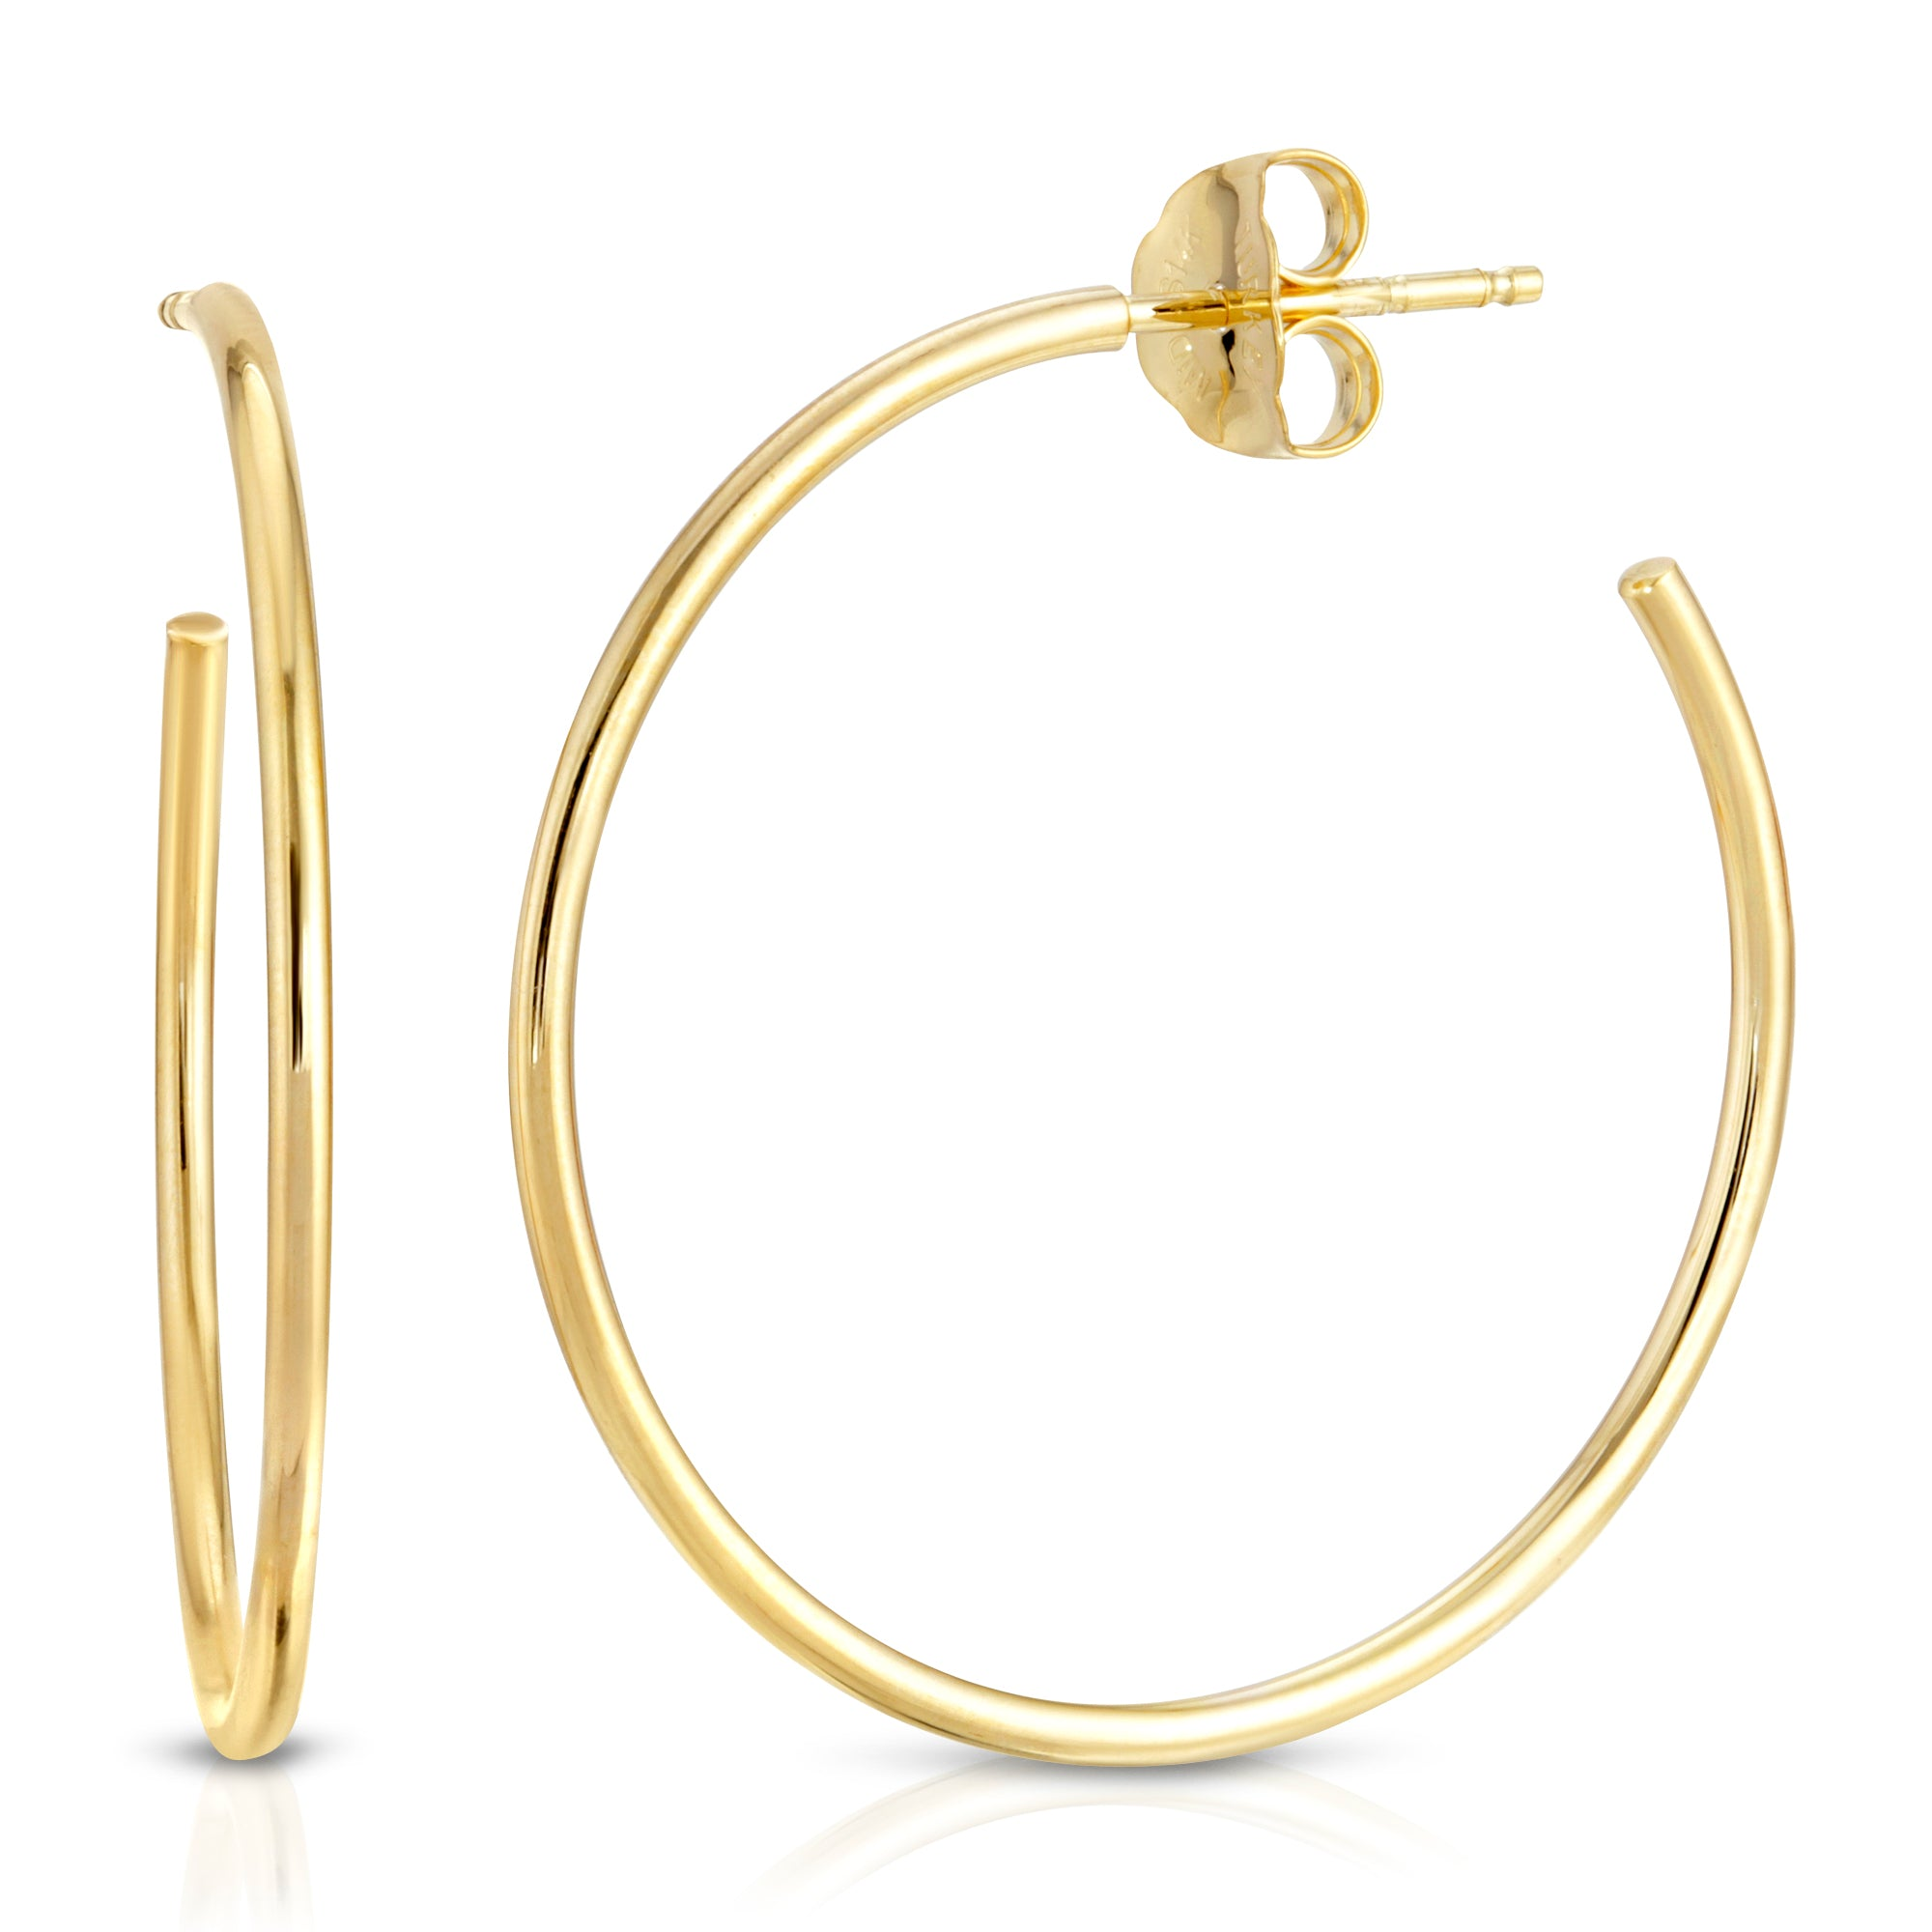 ULTRA THIN MEDIUM HOOPS